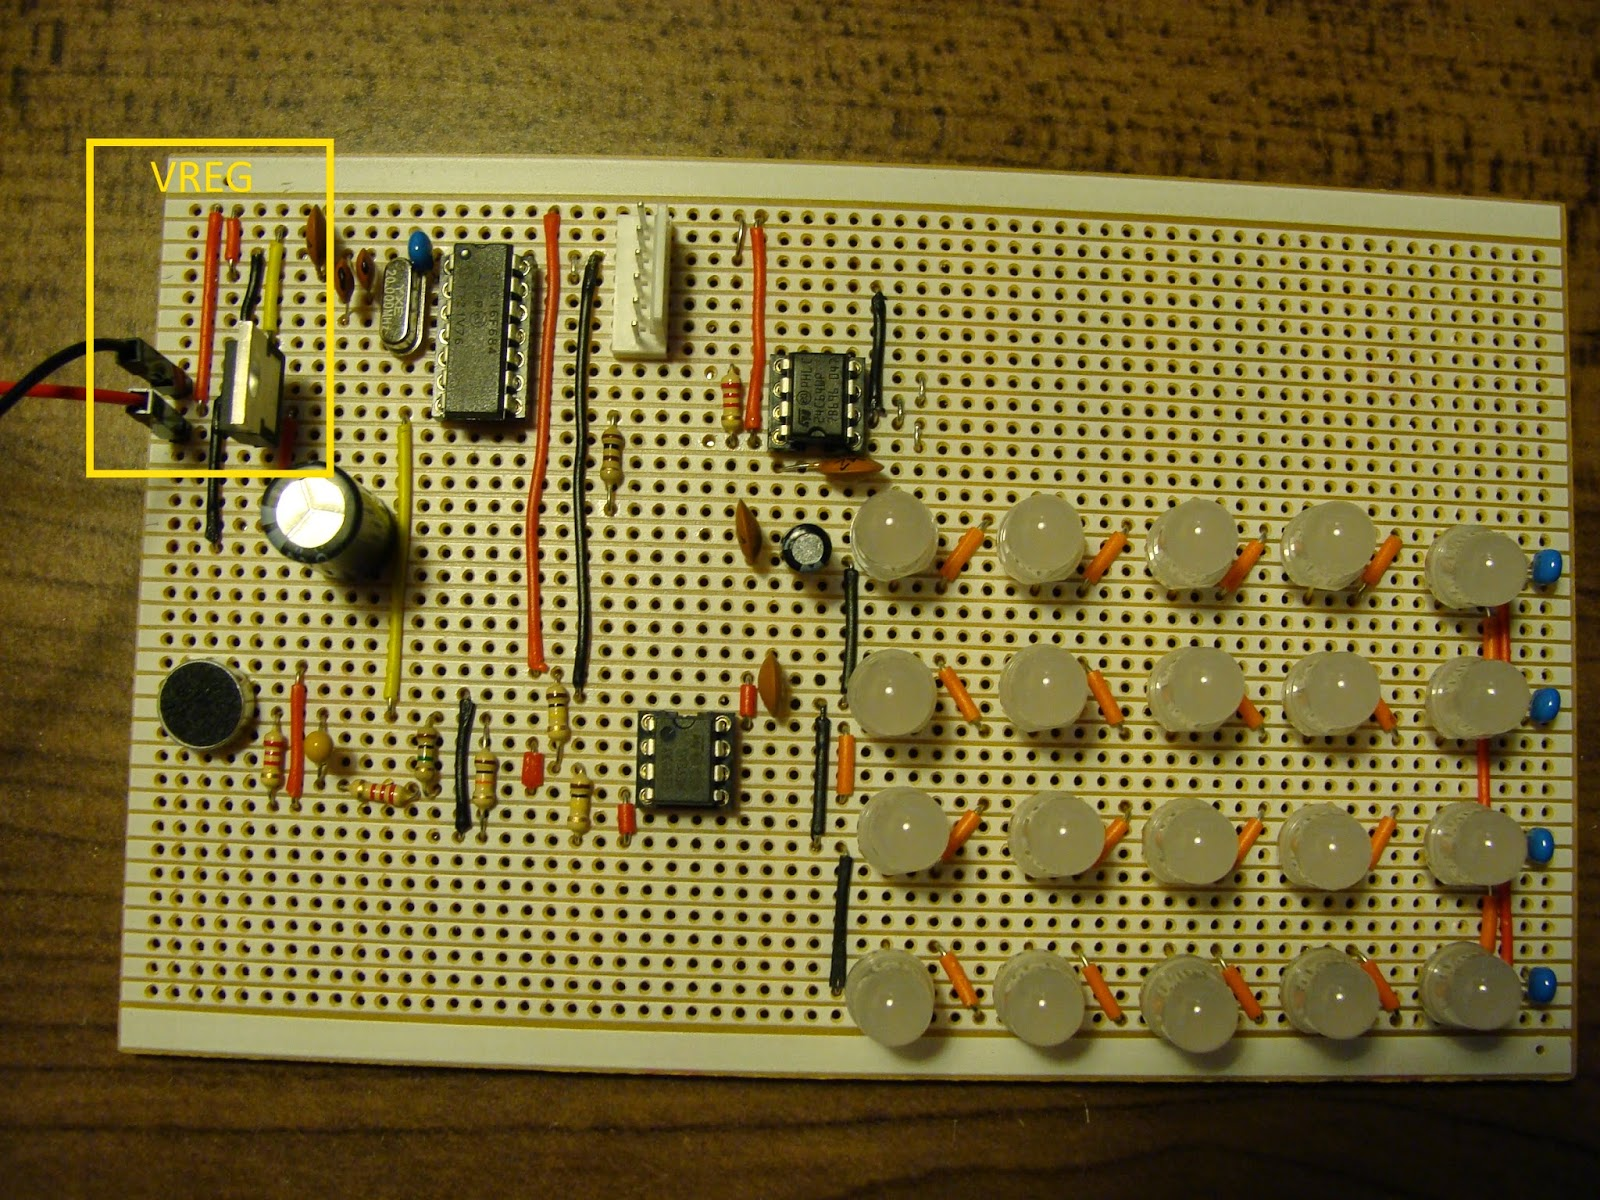 Bored Me October 2014 Voltage Regulator With Lt1086 Electronic Circuit An 5v 15a Ldo Supplying The Whole This Is A Lot Cleaner And Just Requires Single Wall Wart Power Supply